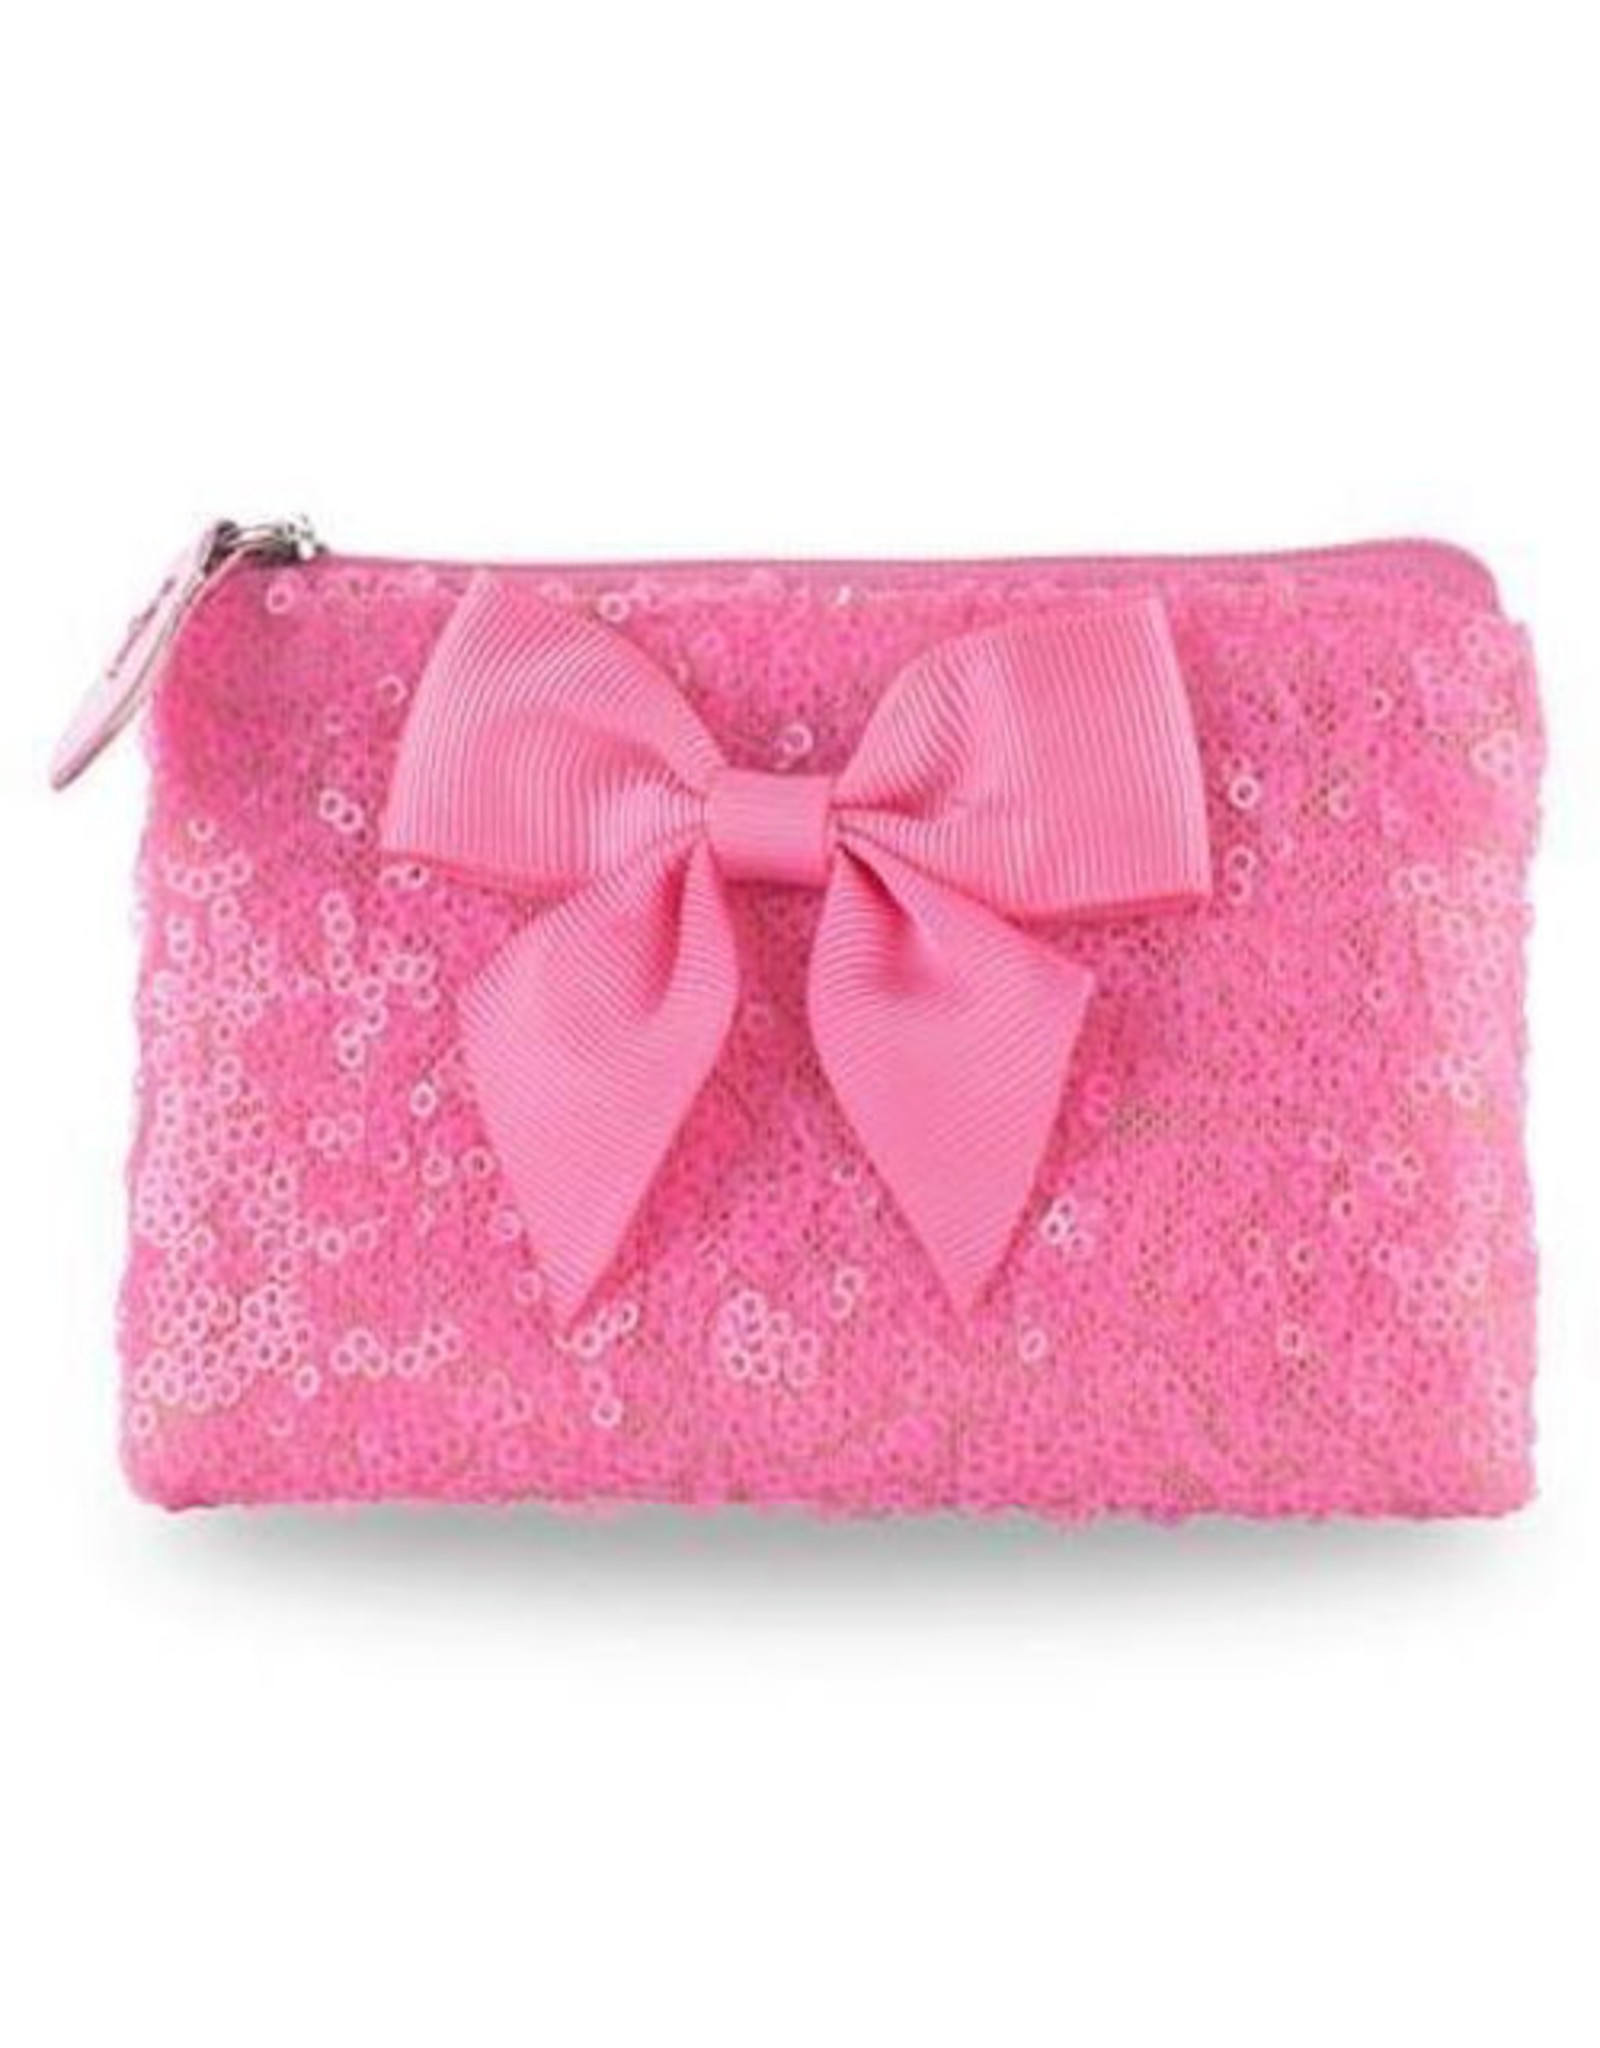 Forever Sparkle Coin Purse - Hot Pink